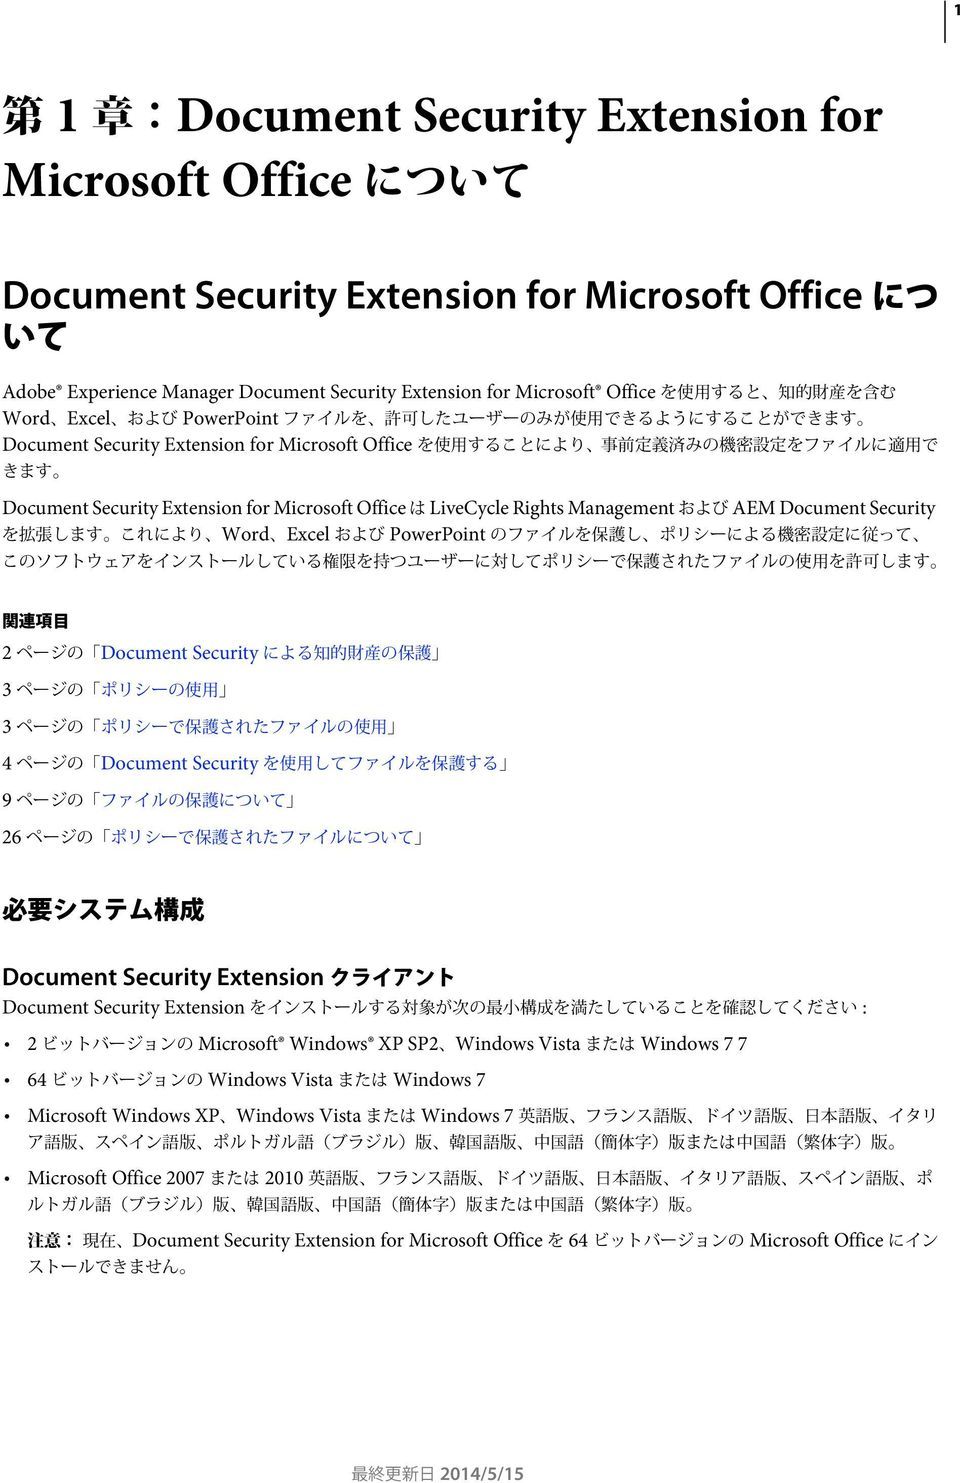 Excel PowerPoint 2 Document Security 3 3 4 Document Security 9 26 Document Security Extension Document Security Extension : 2 Microsoft Windows XP SP2 Windows Vista Windows 7 7